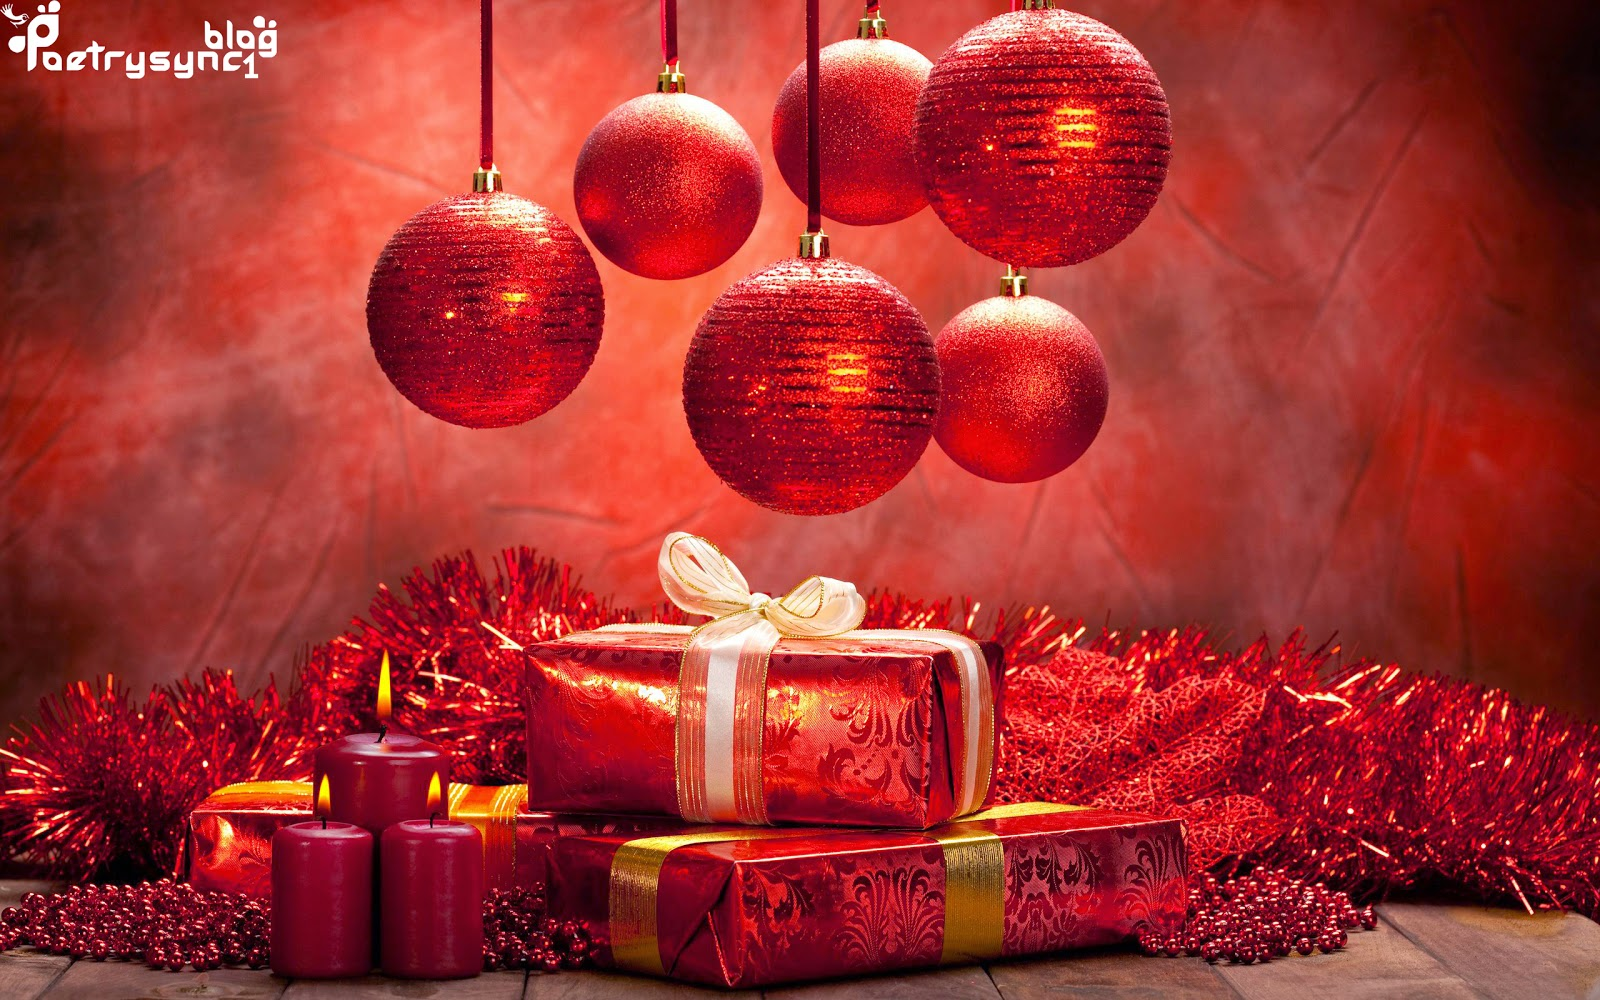 Merry Christmas Wishes Wallpapers Balls Gifts Candles With Best 25